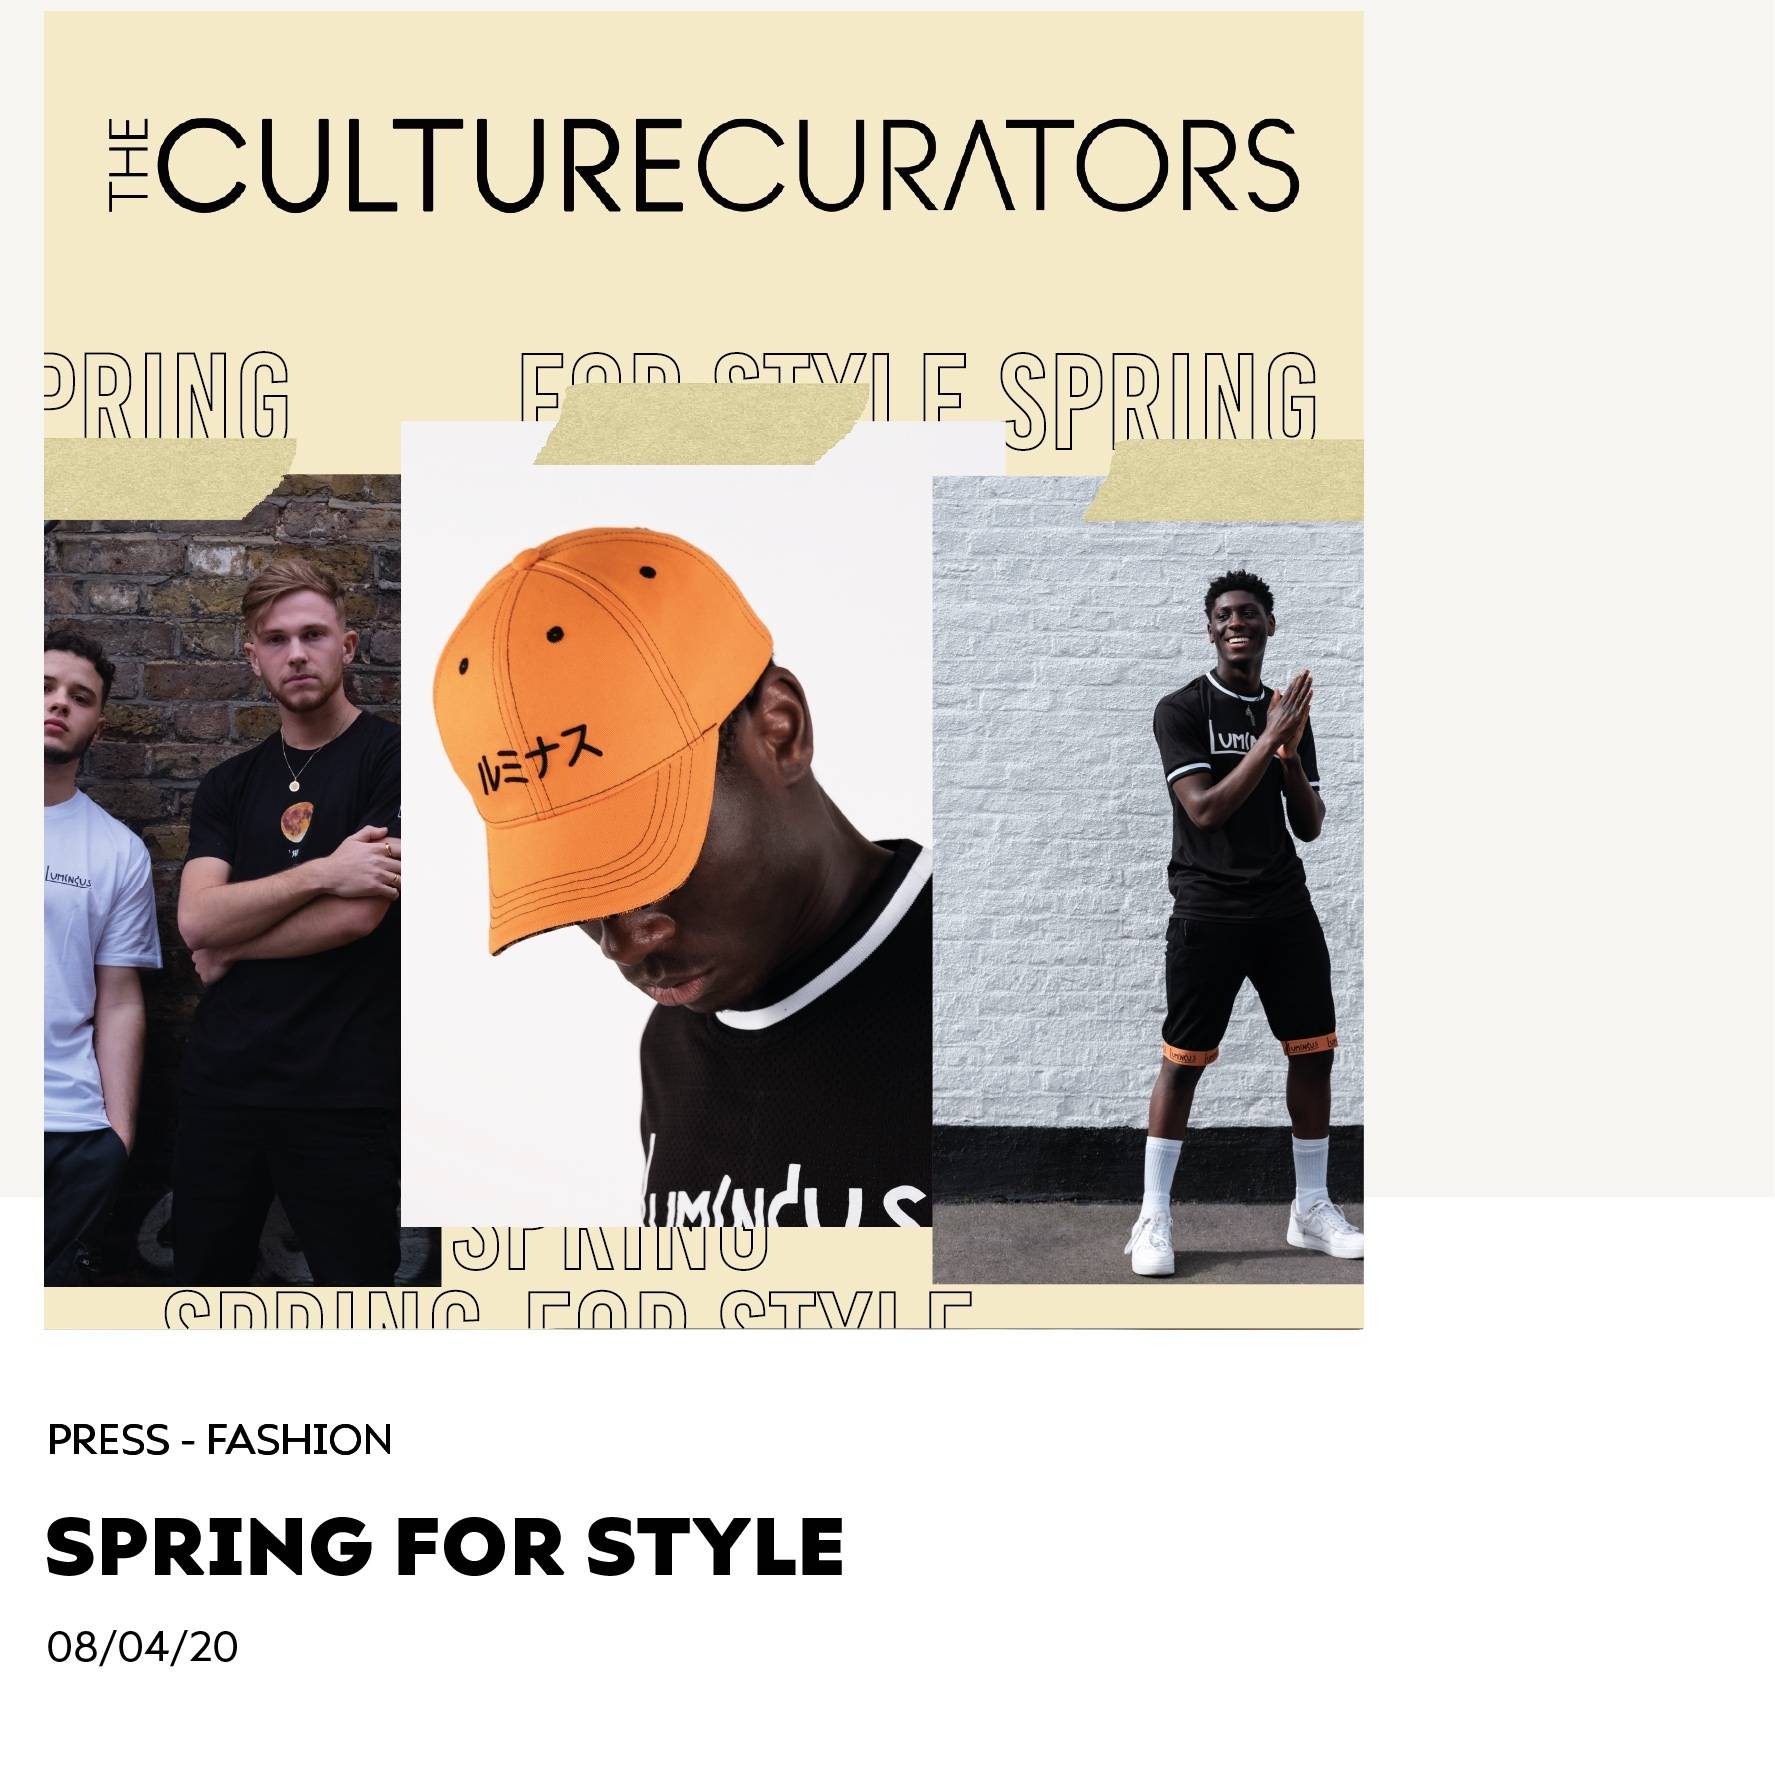 Spring For Style - The Culture Curators